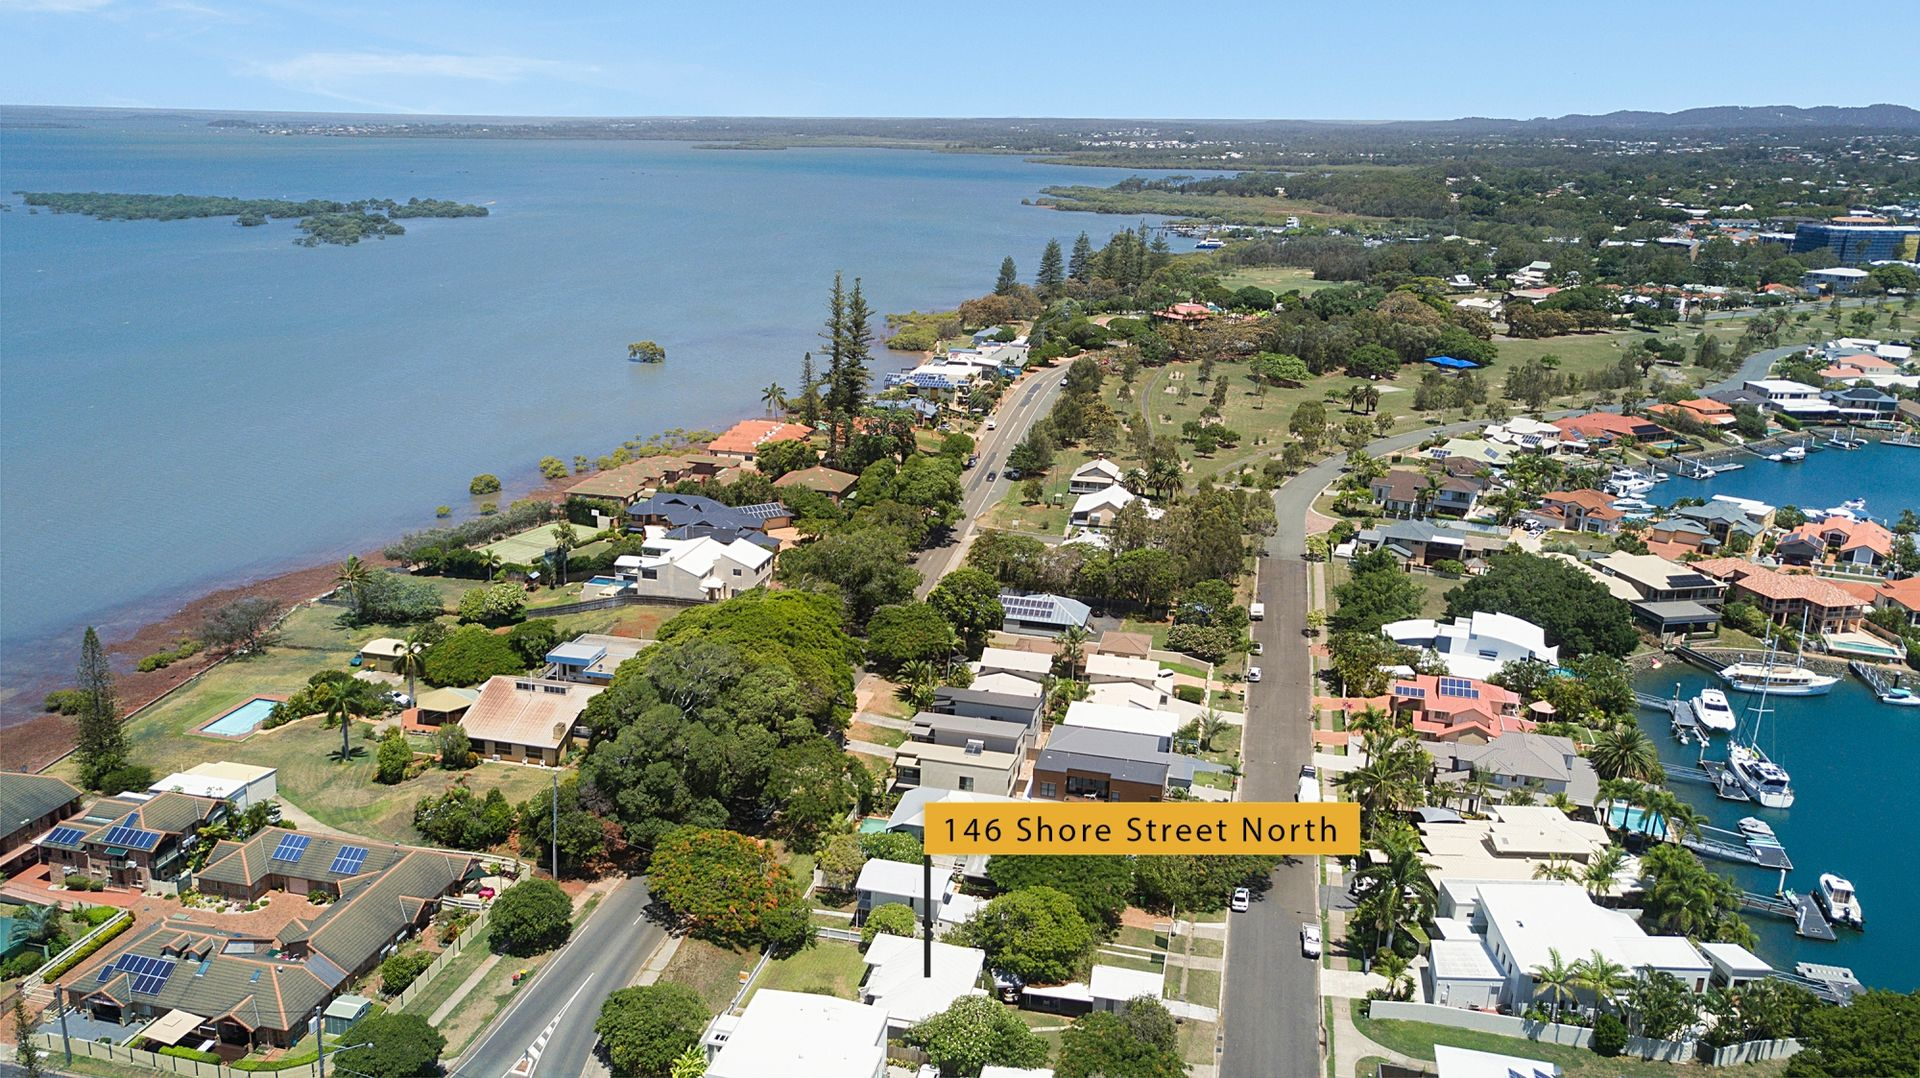 146 Shore Street North, Cleveland QLD 4163, Image 0